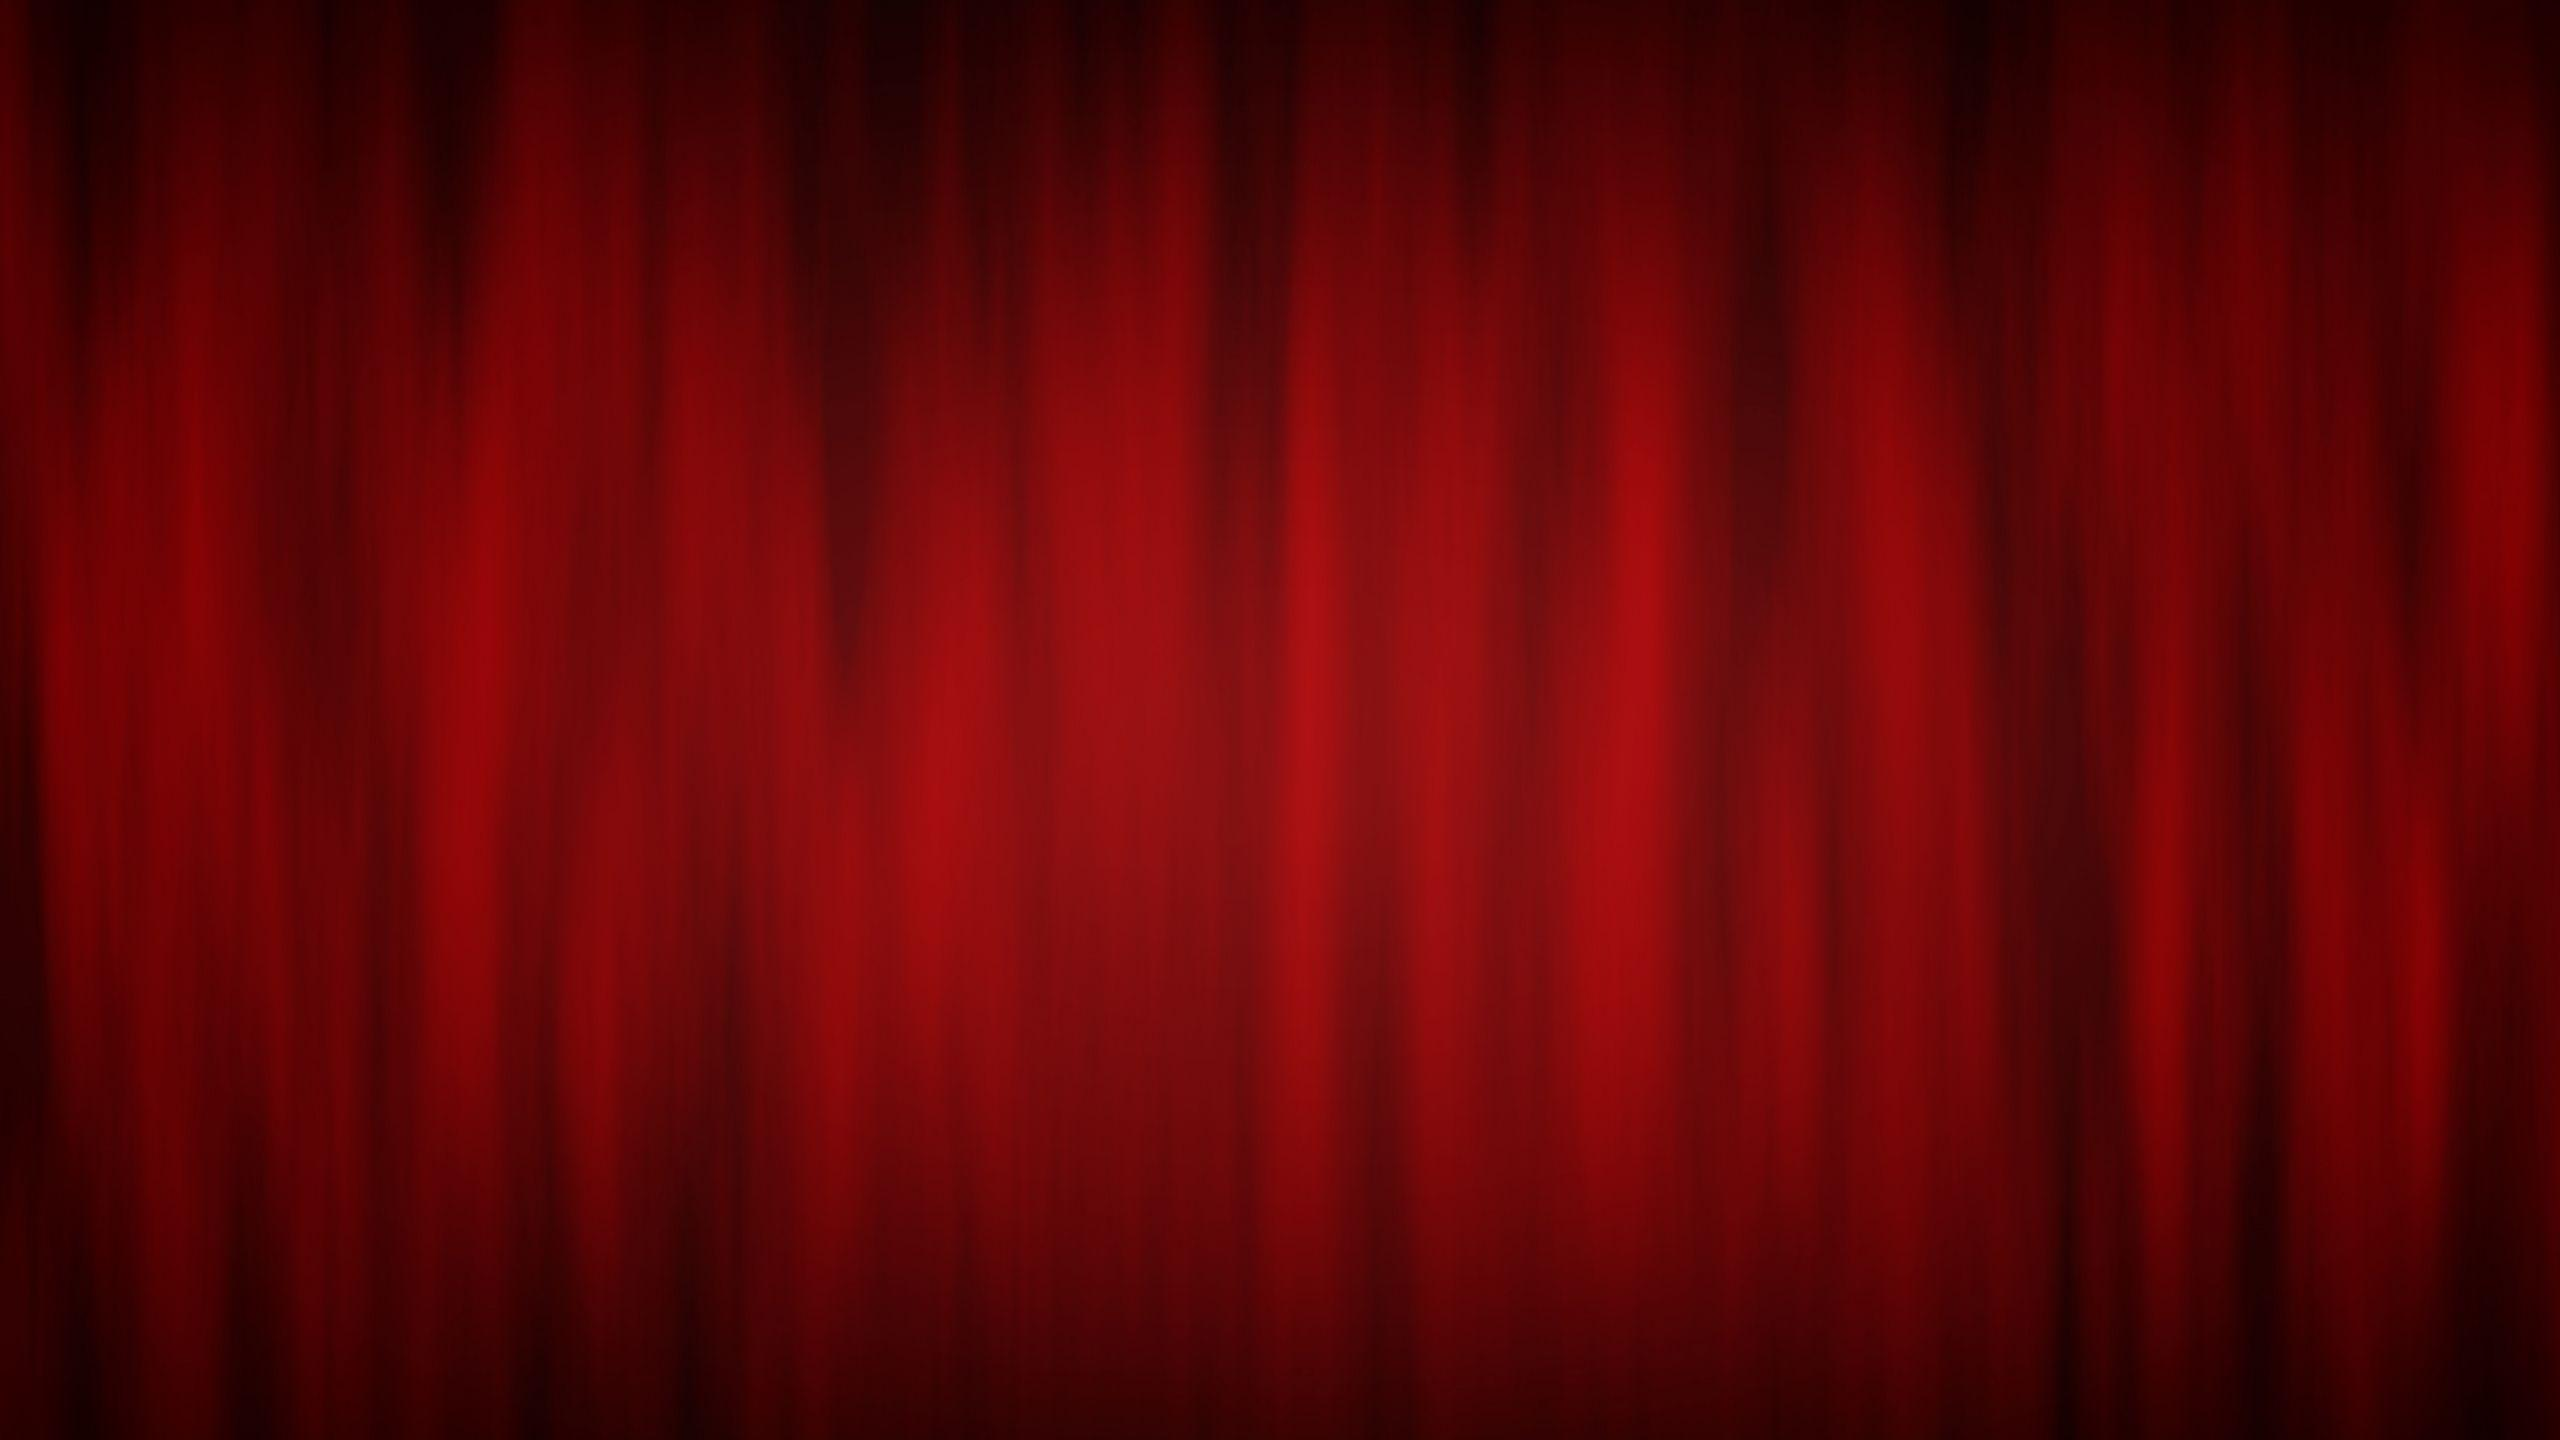 Free red wallpapers wallpaper cave for Velvet curtains background